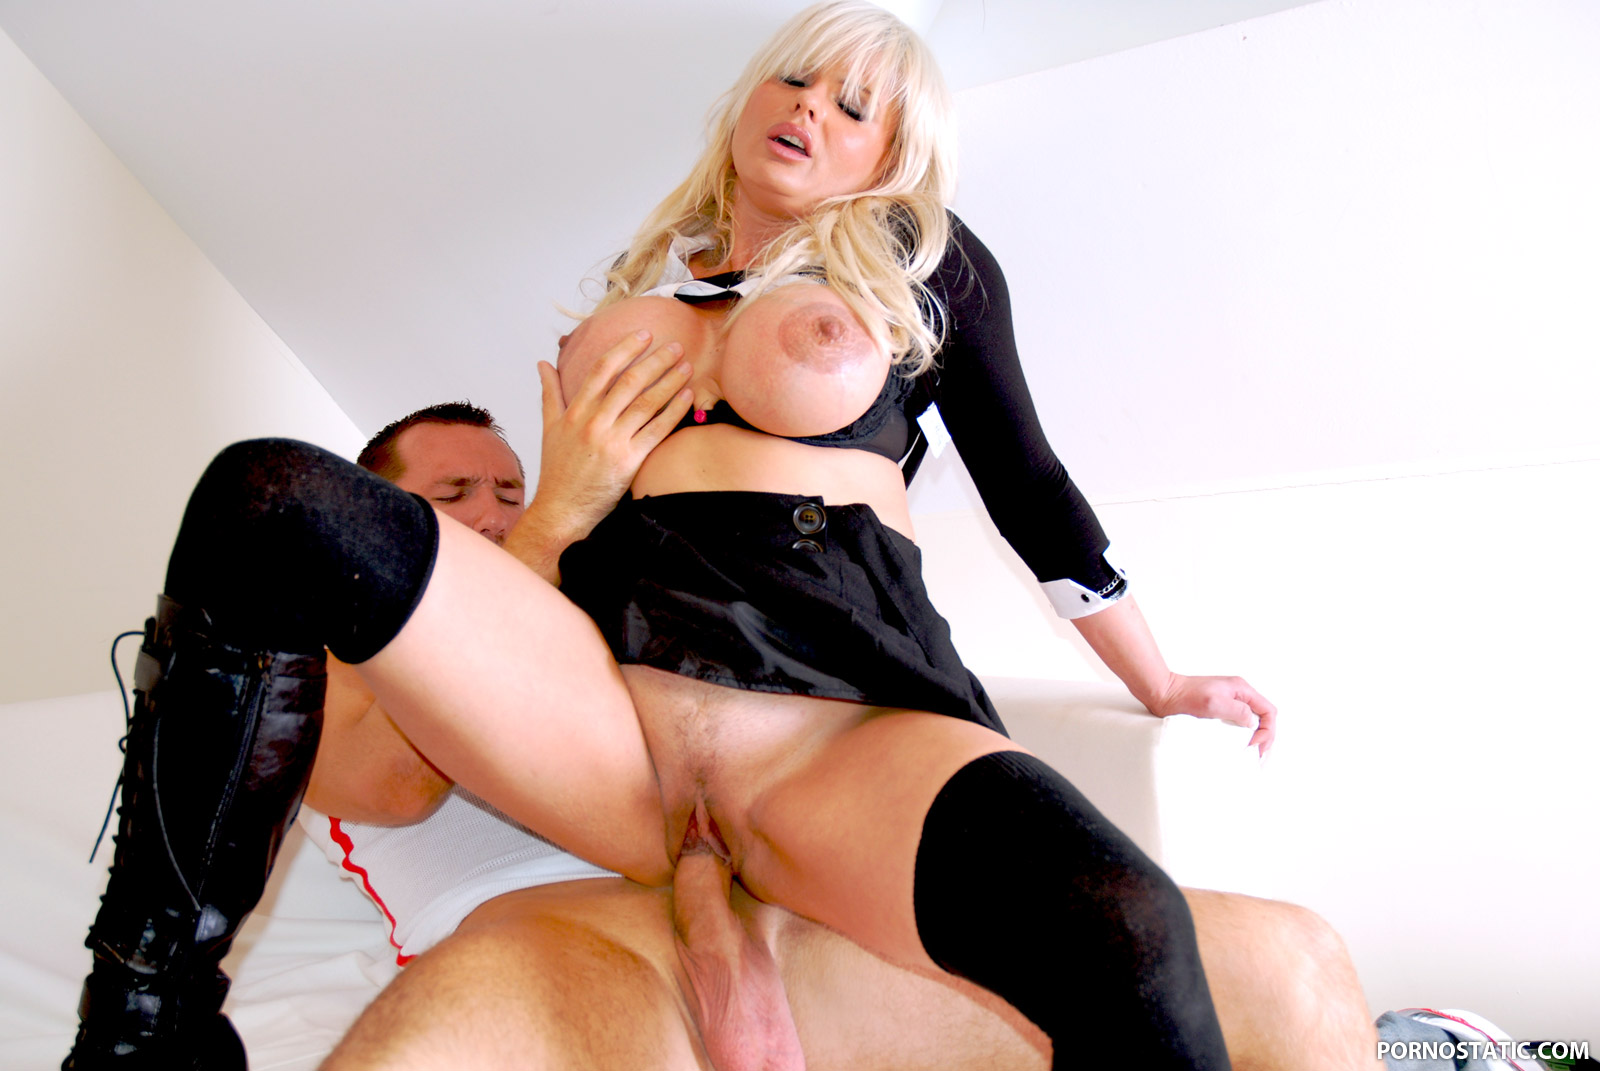 Hot clips mother dauther threesome doctor hot horny